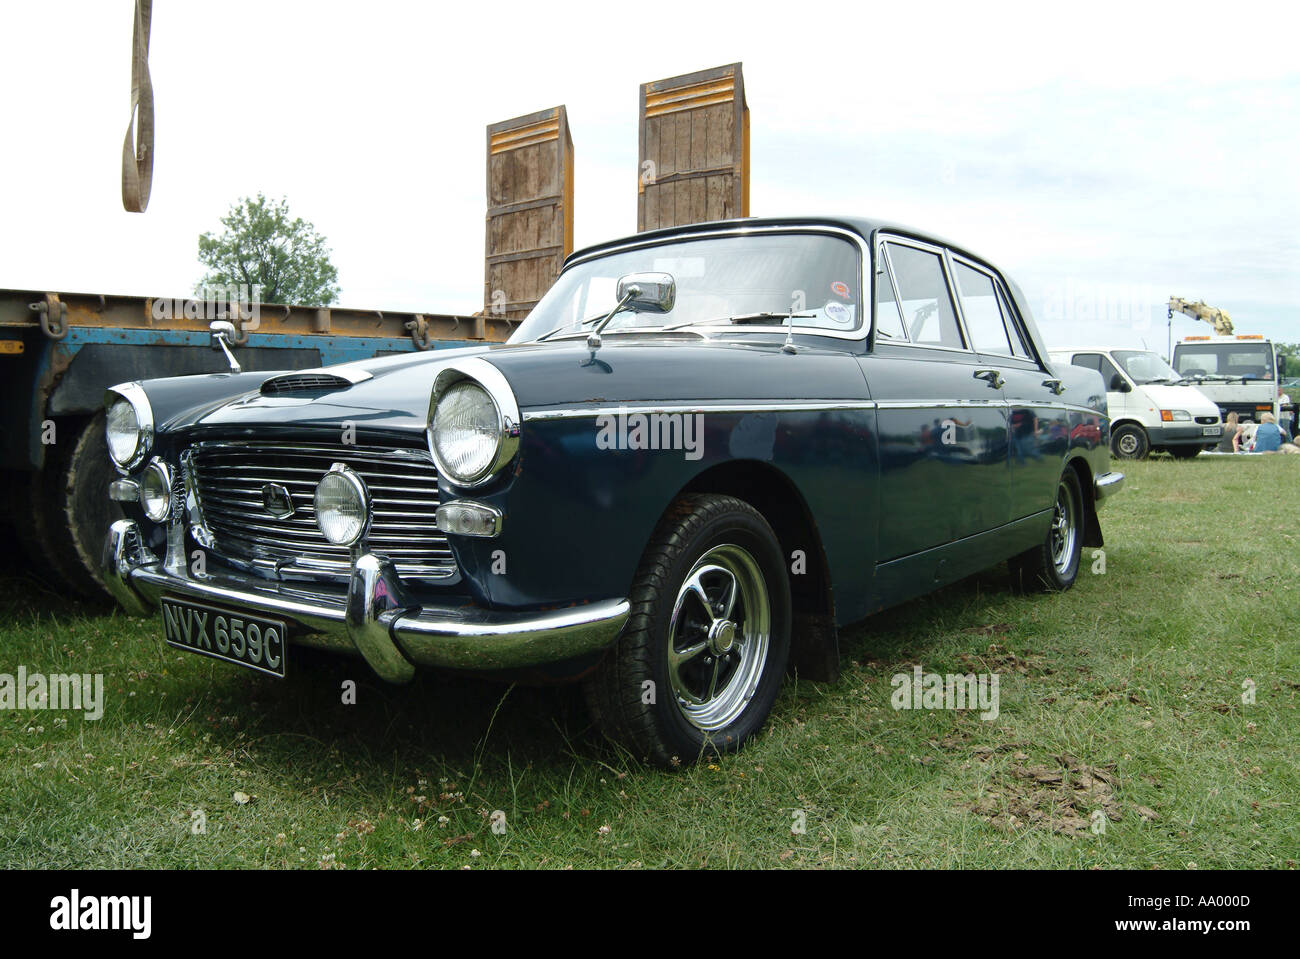 Austin Car High Resolution Stock Photography And Images Alamy